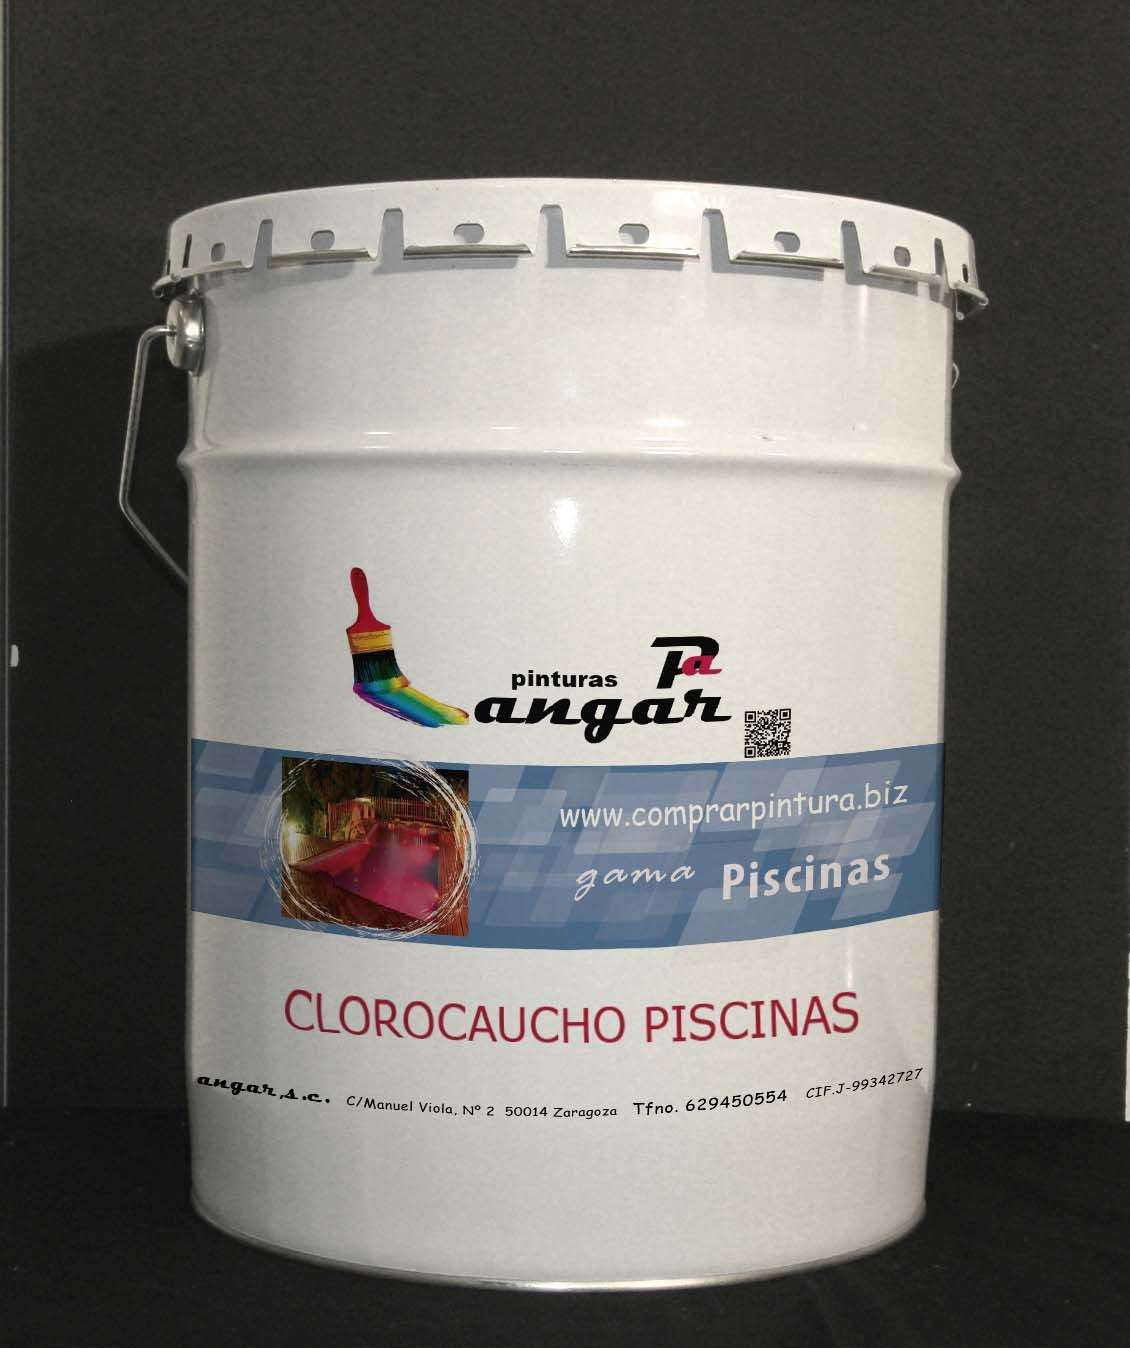 Pintura clorocaucho piscinas precio materiales de for Materiales para construccion de piscinas